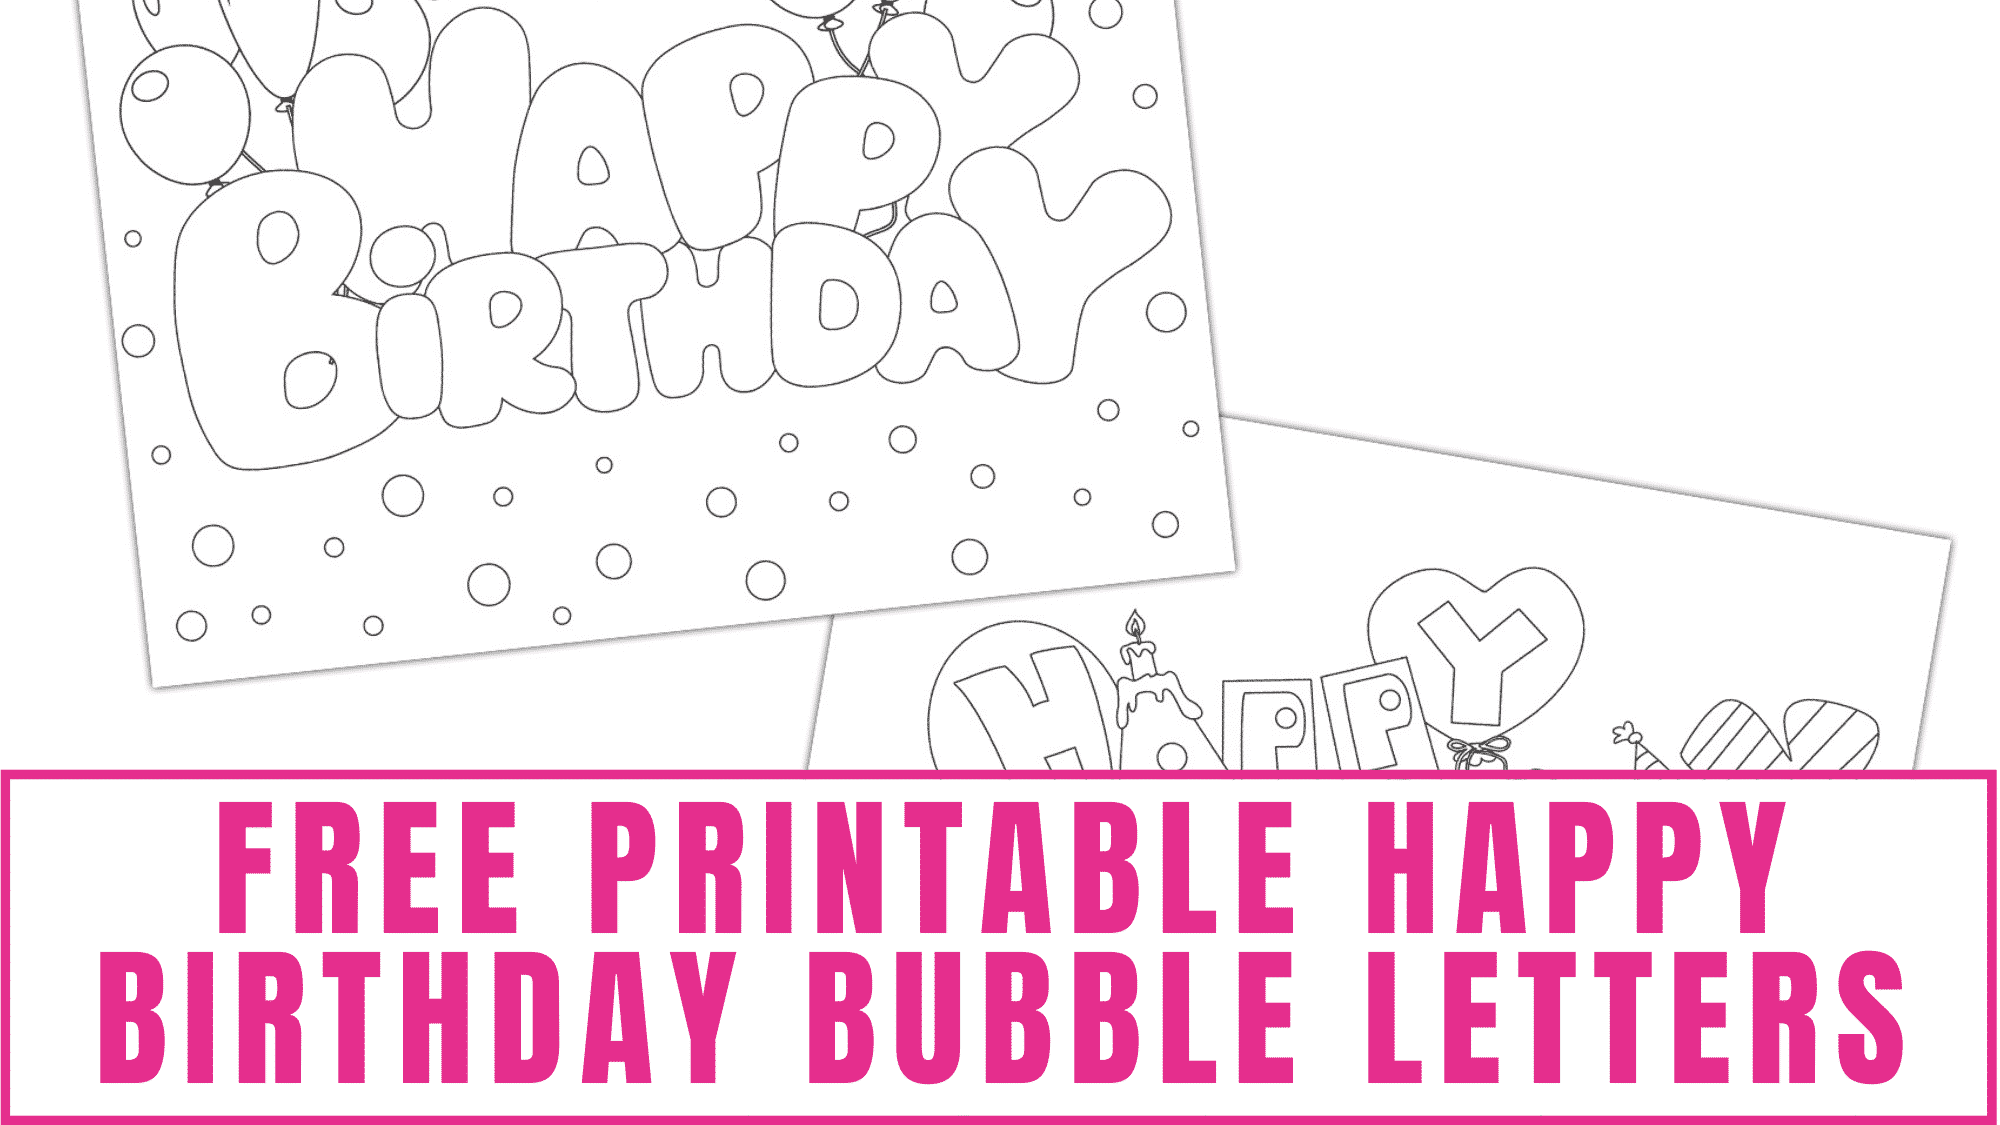 Make someone special a one-of-a-kind happy birthday card by coloring and decorating these free printable happy birthday bubble letters.